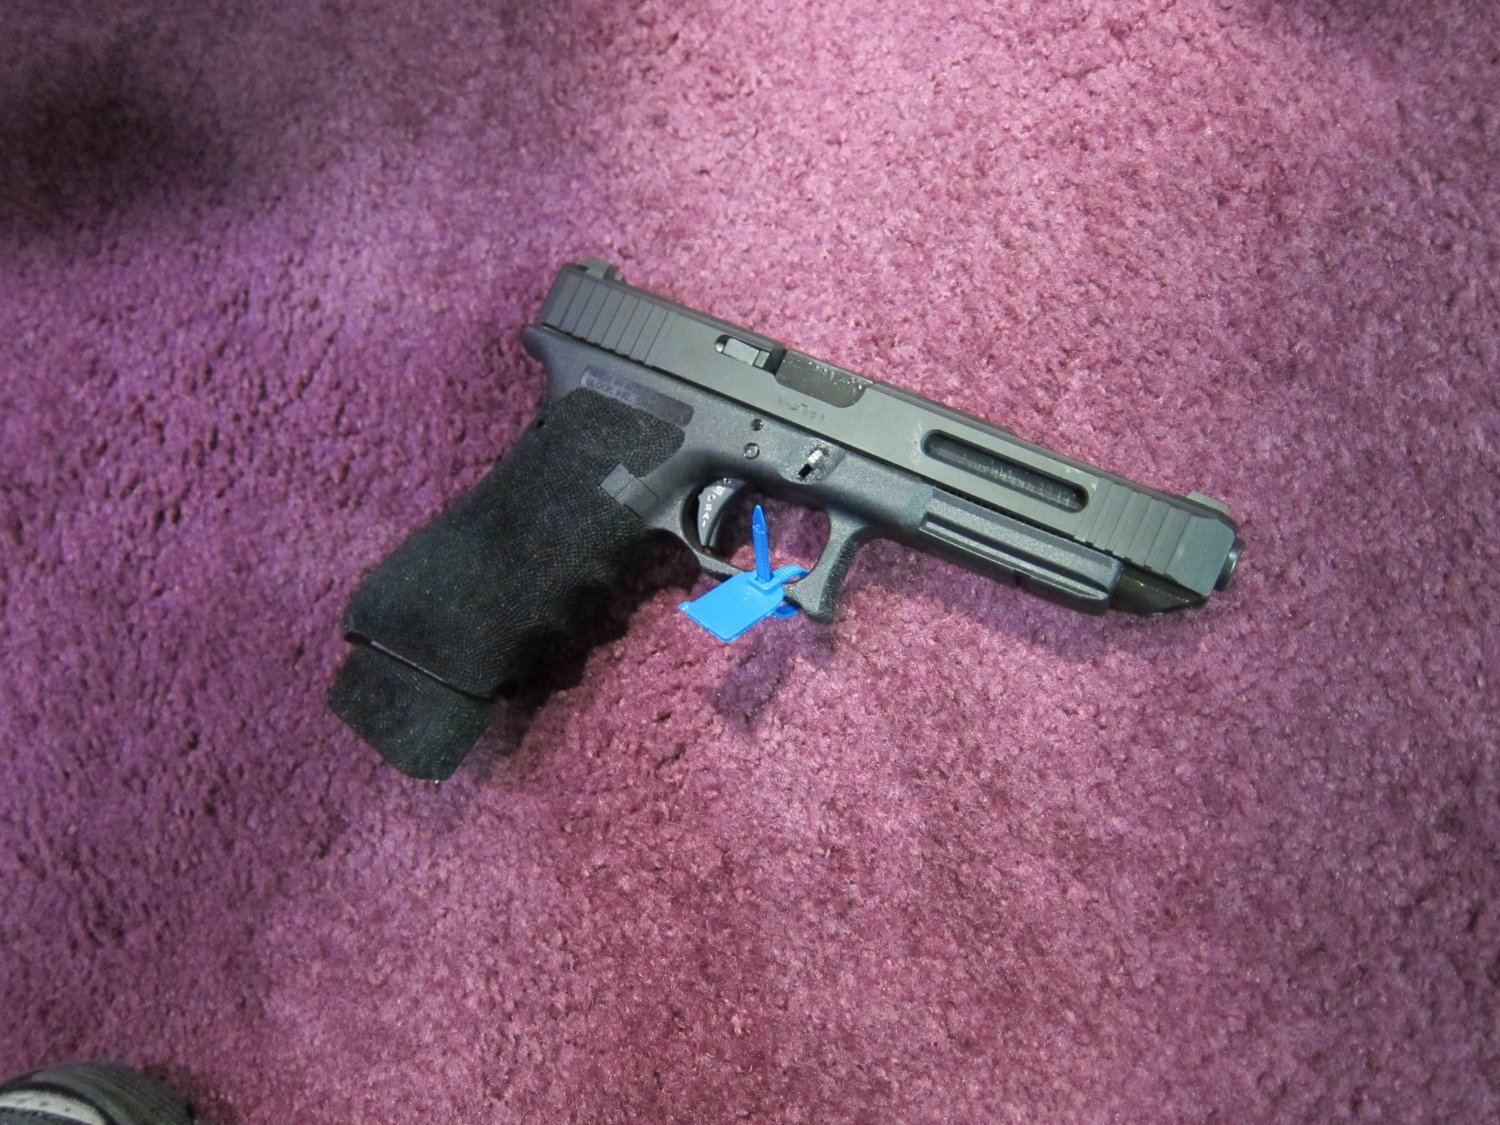 <!--:en-->Salient Arms (SAI) Customized Glock 17/22 (G17/22), Glock 34/35 (G34/35), and Glock 19/23 (G19/23) Pistols for Tactical 3-Gun and IPSC Competition, Taran Butler Style! (Photos!) <!--:-->